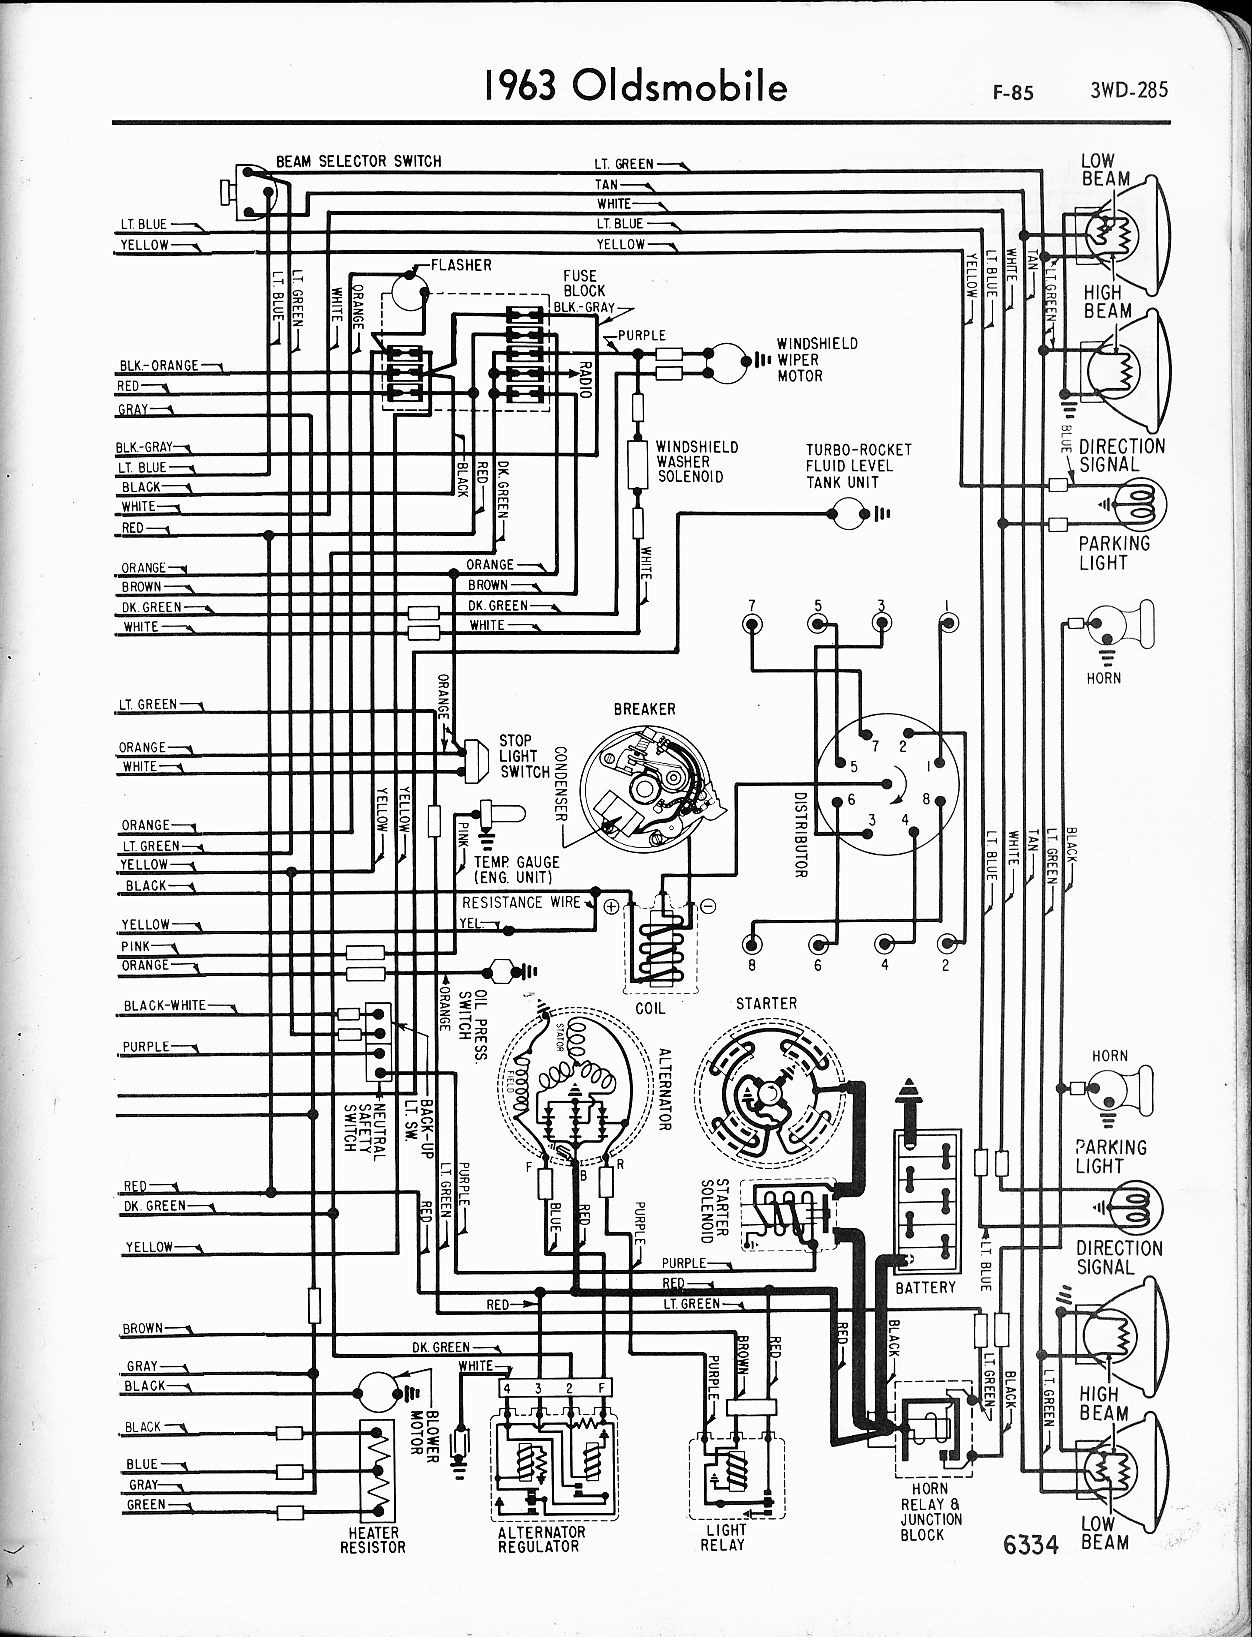 1996 Oldsmobile 88 Engine Diagram - Wiring Diagram Work on